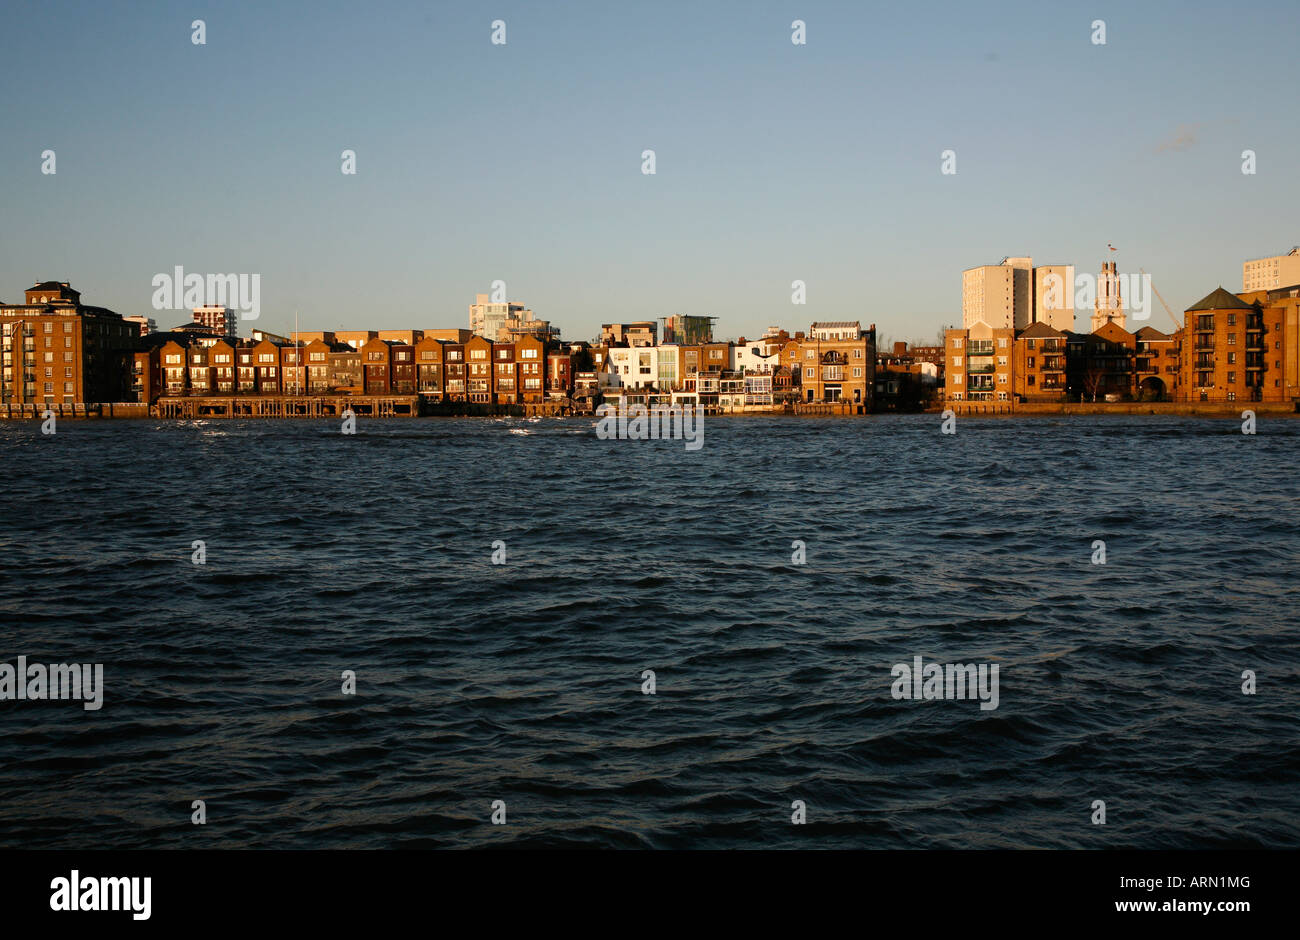 Looking across the River Thames to Limehouse, London - Stock Image